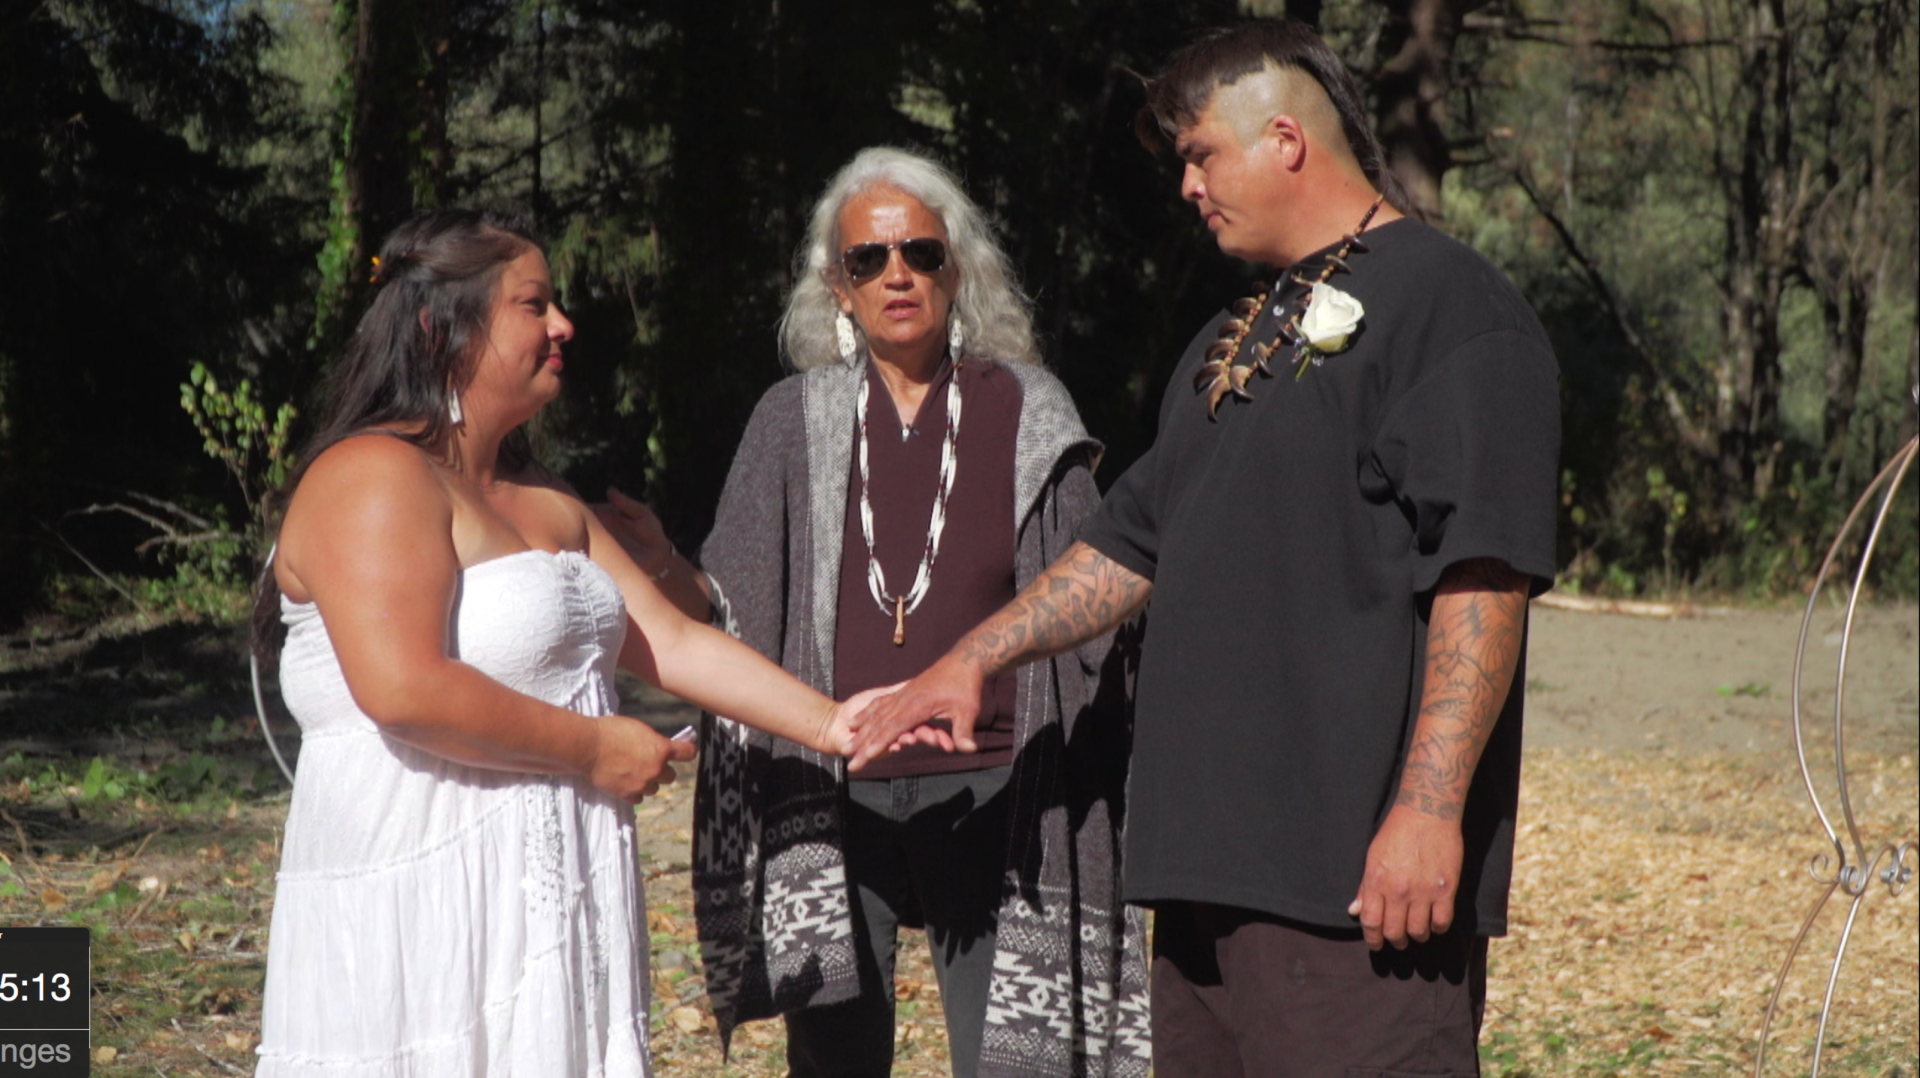 Judge Abby Abinanti marries Taos Proctor and Kelly Gibson - photo by Anne Makepeace